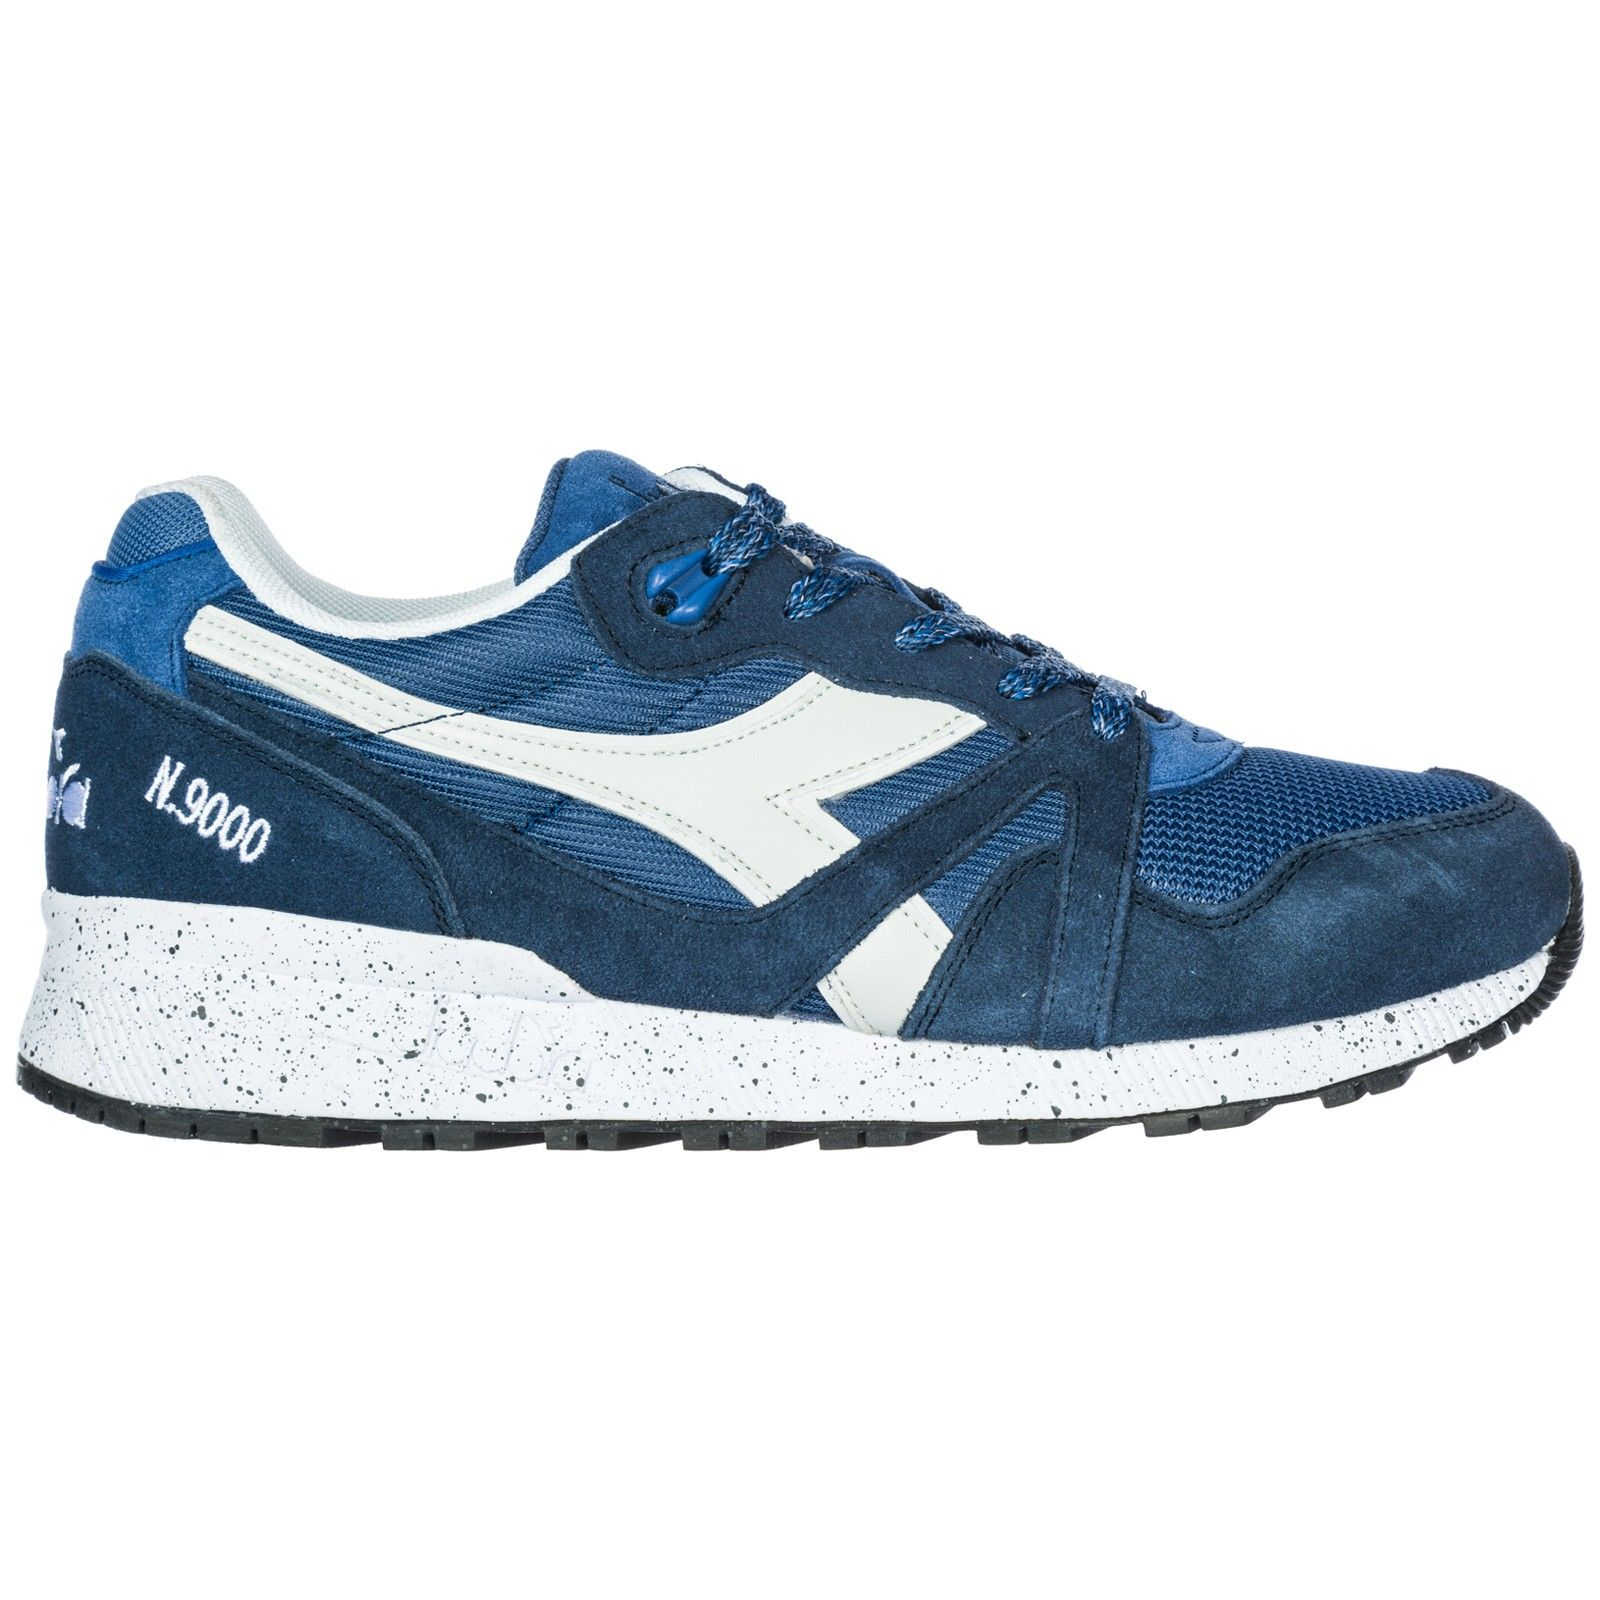 DIADORA MEN'S SHOES SUEDE TRAINERS SNEAKERS N9000 SPECKLED